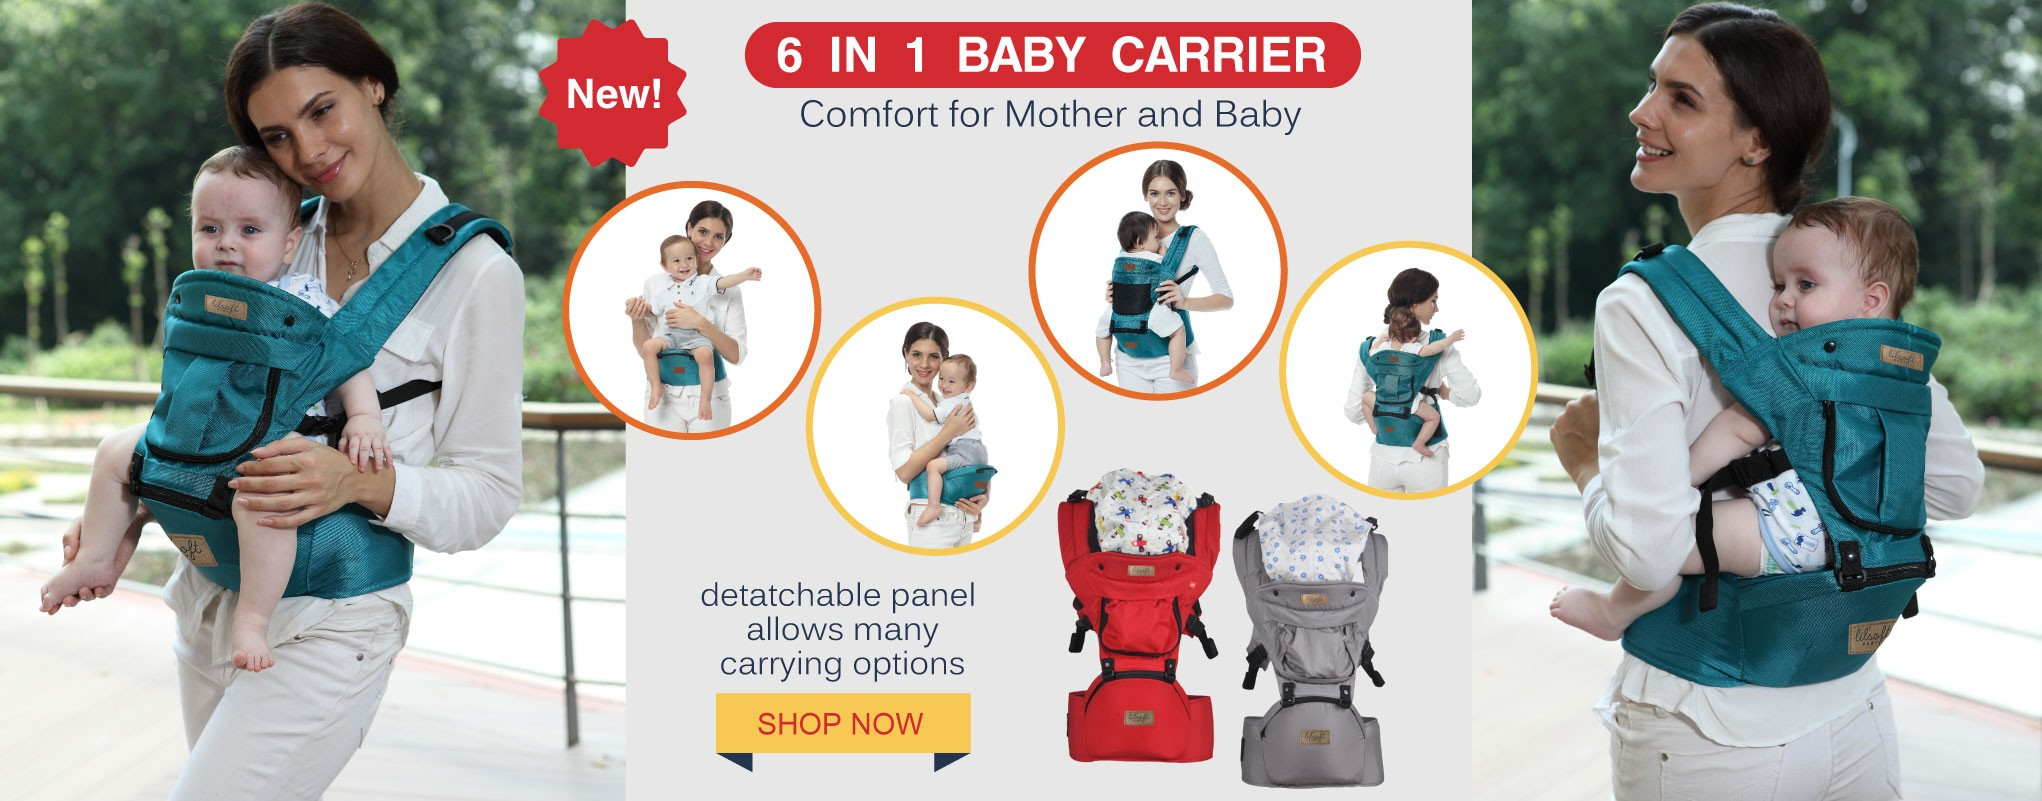 6 in 1 Baby Hip Carrier - Comfort for Mother and Baby